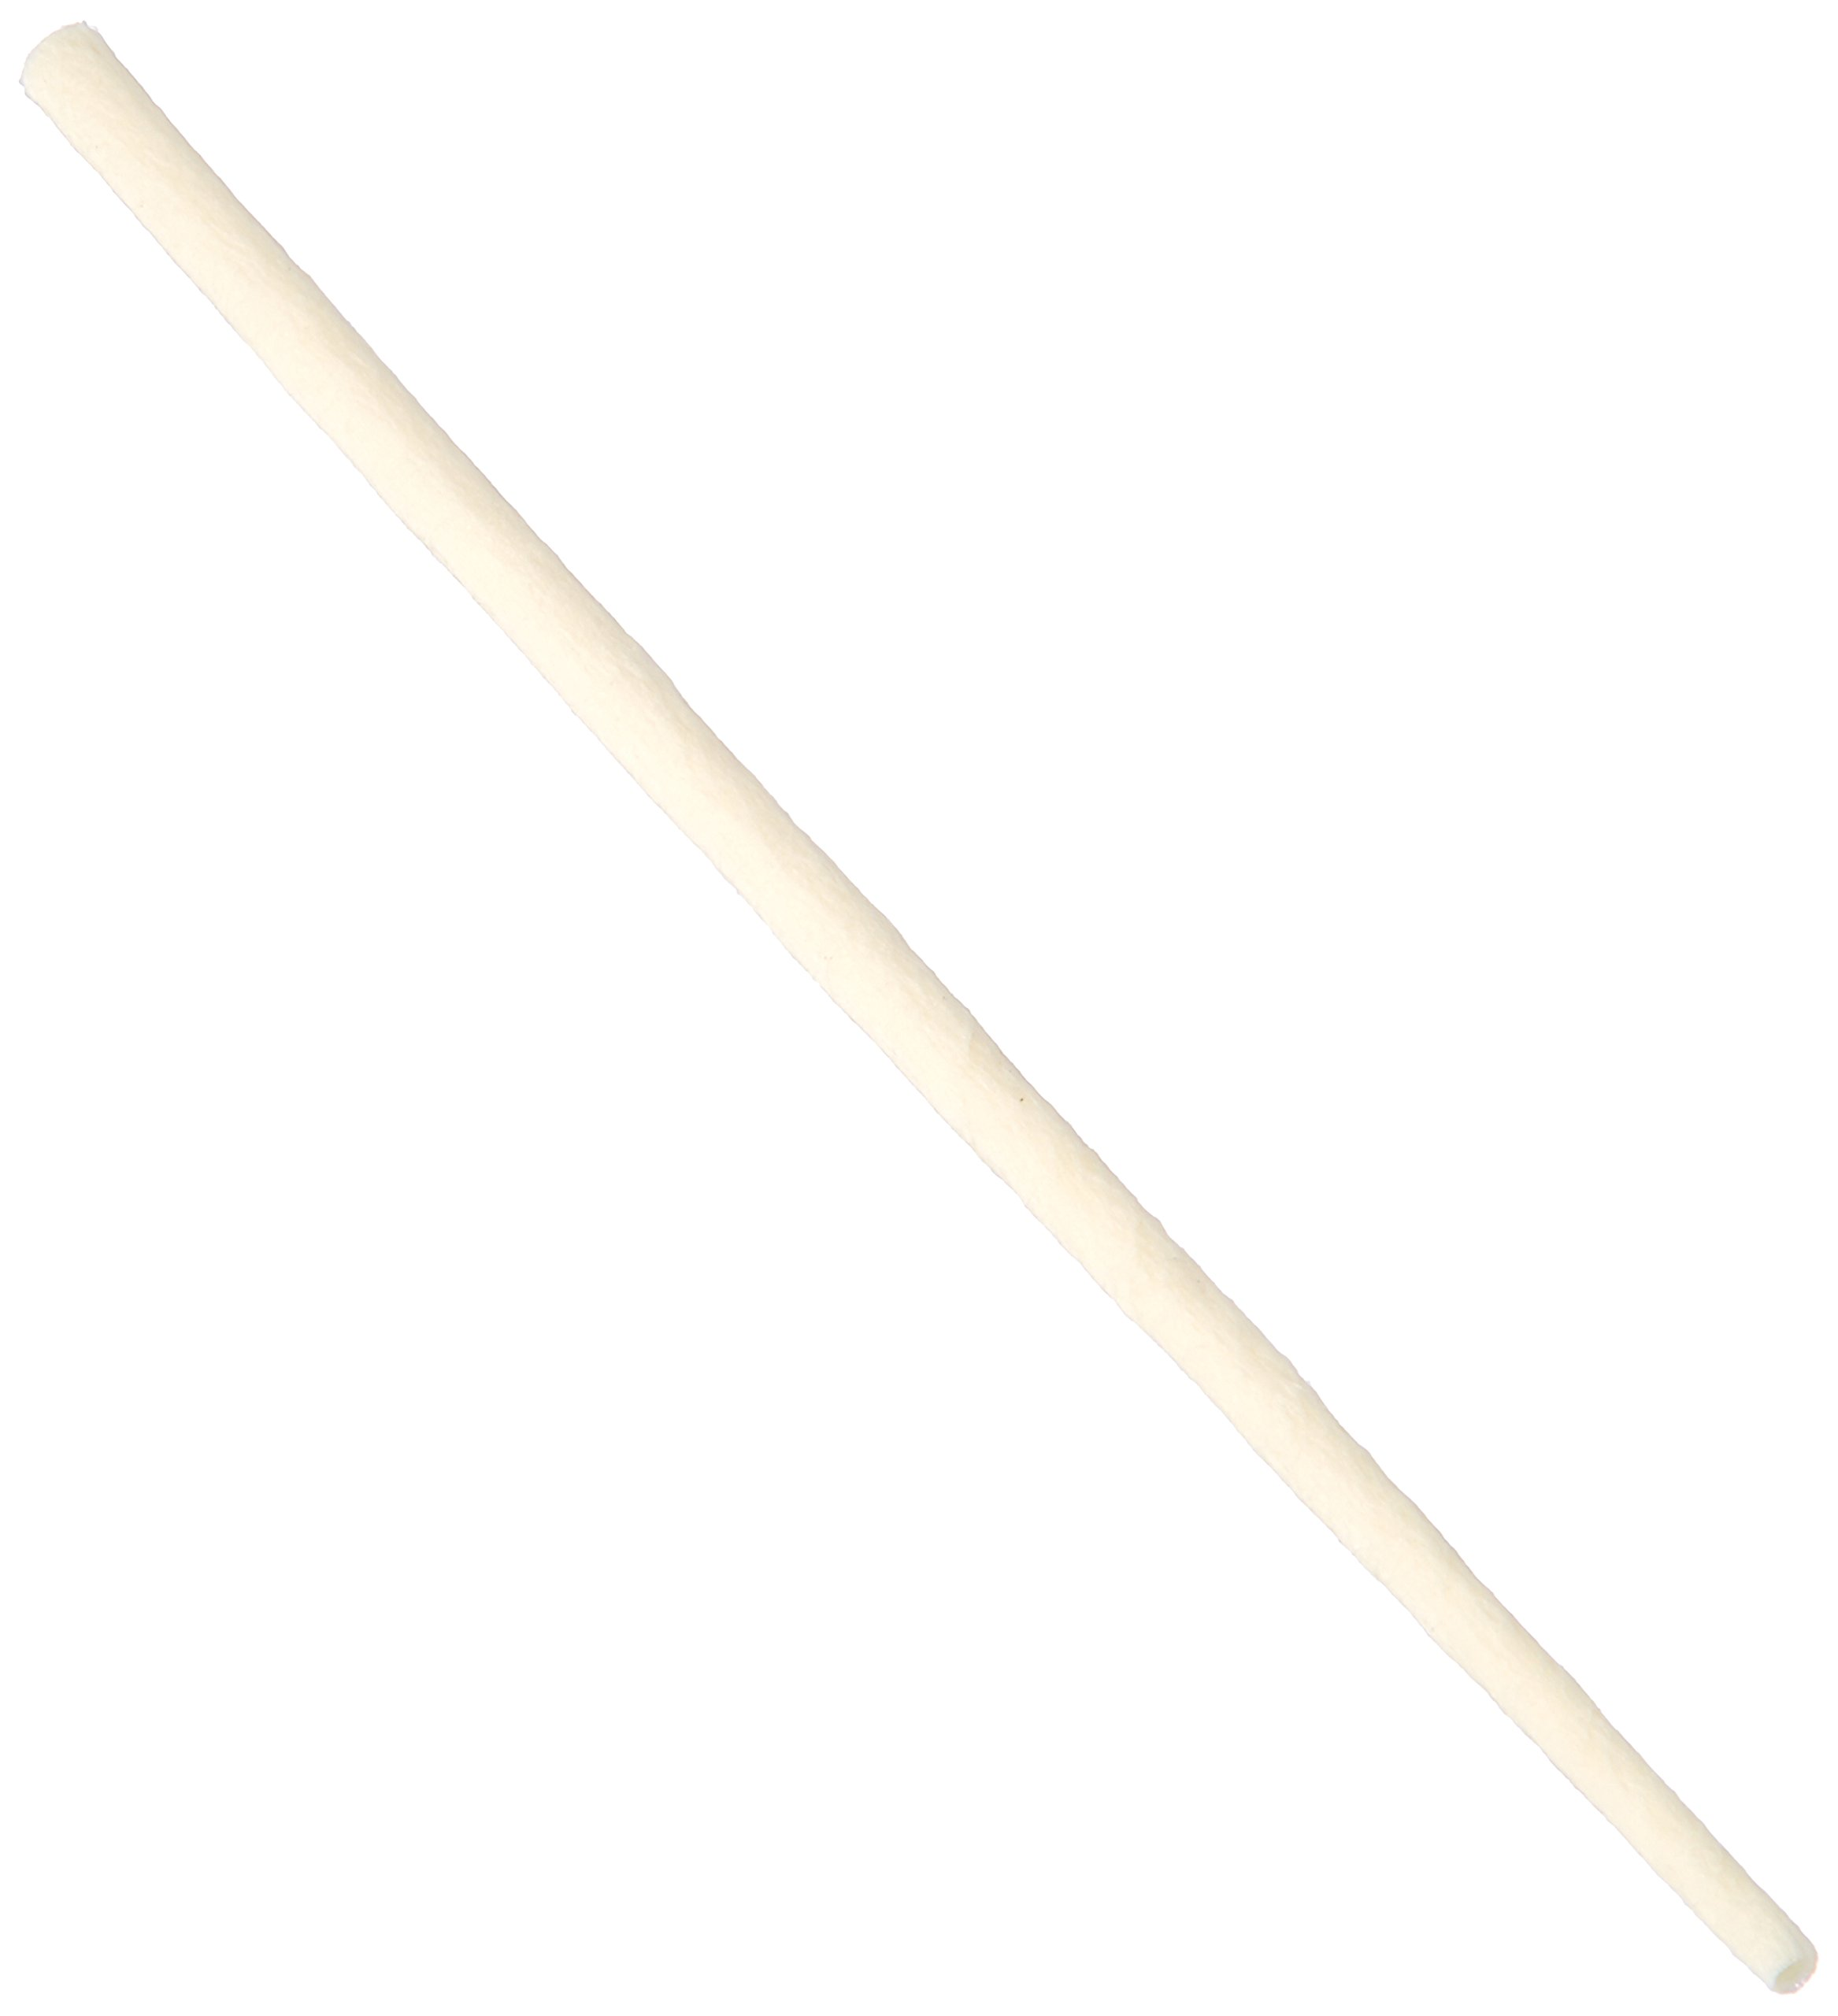 Maillefer 670417 Absorbent Paper Point, Size 60 (Pack of 200)